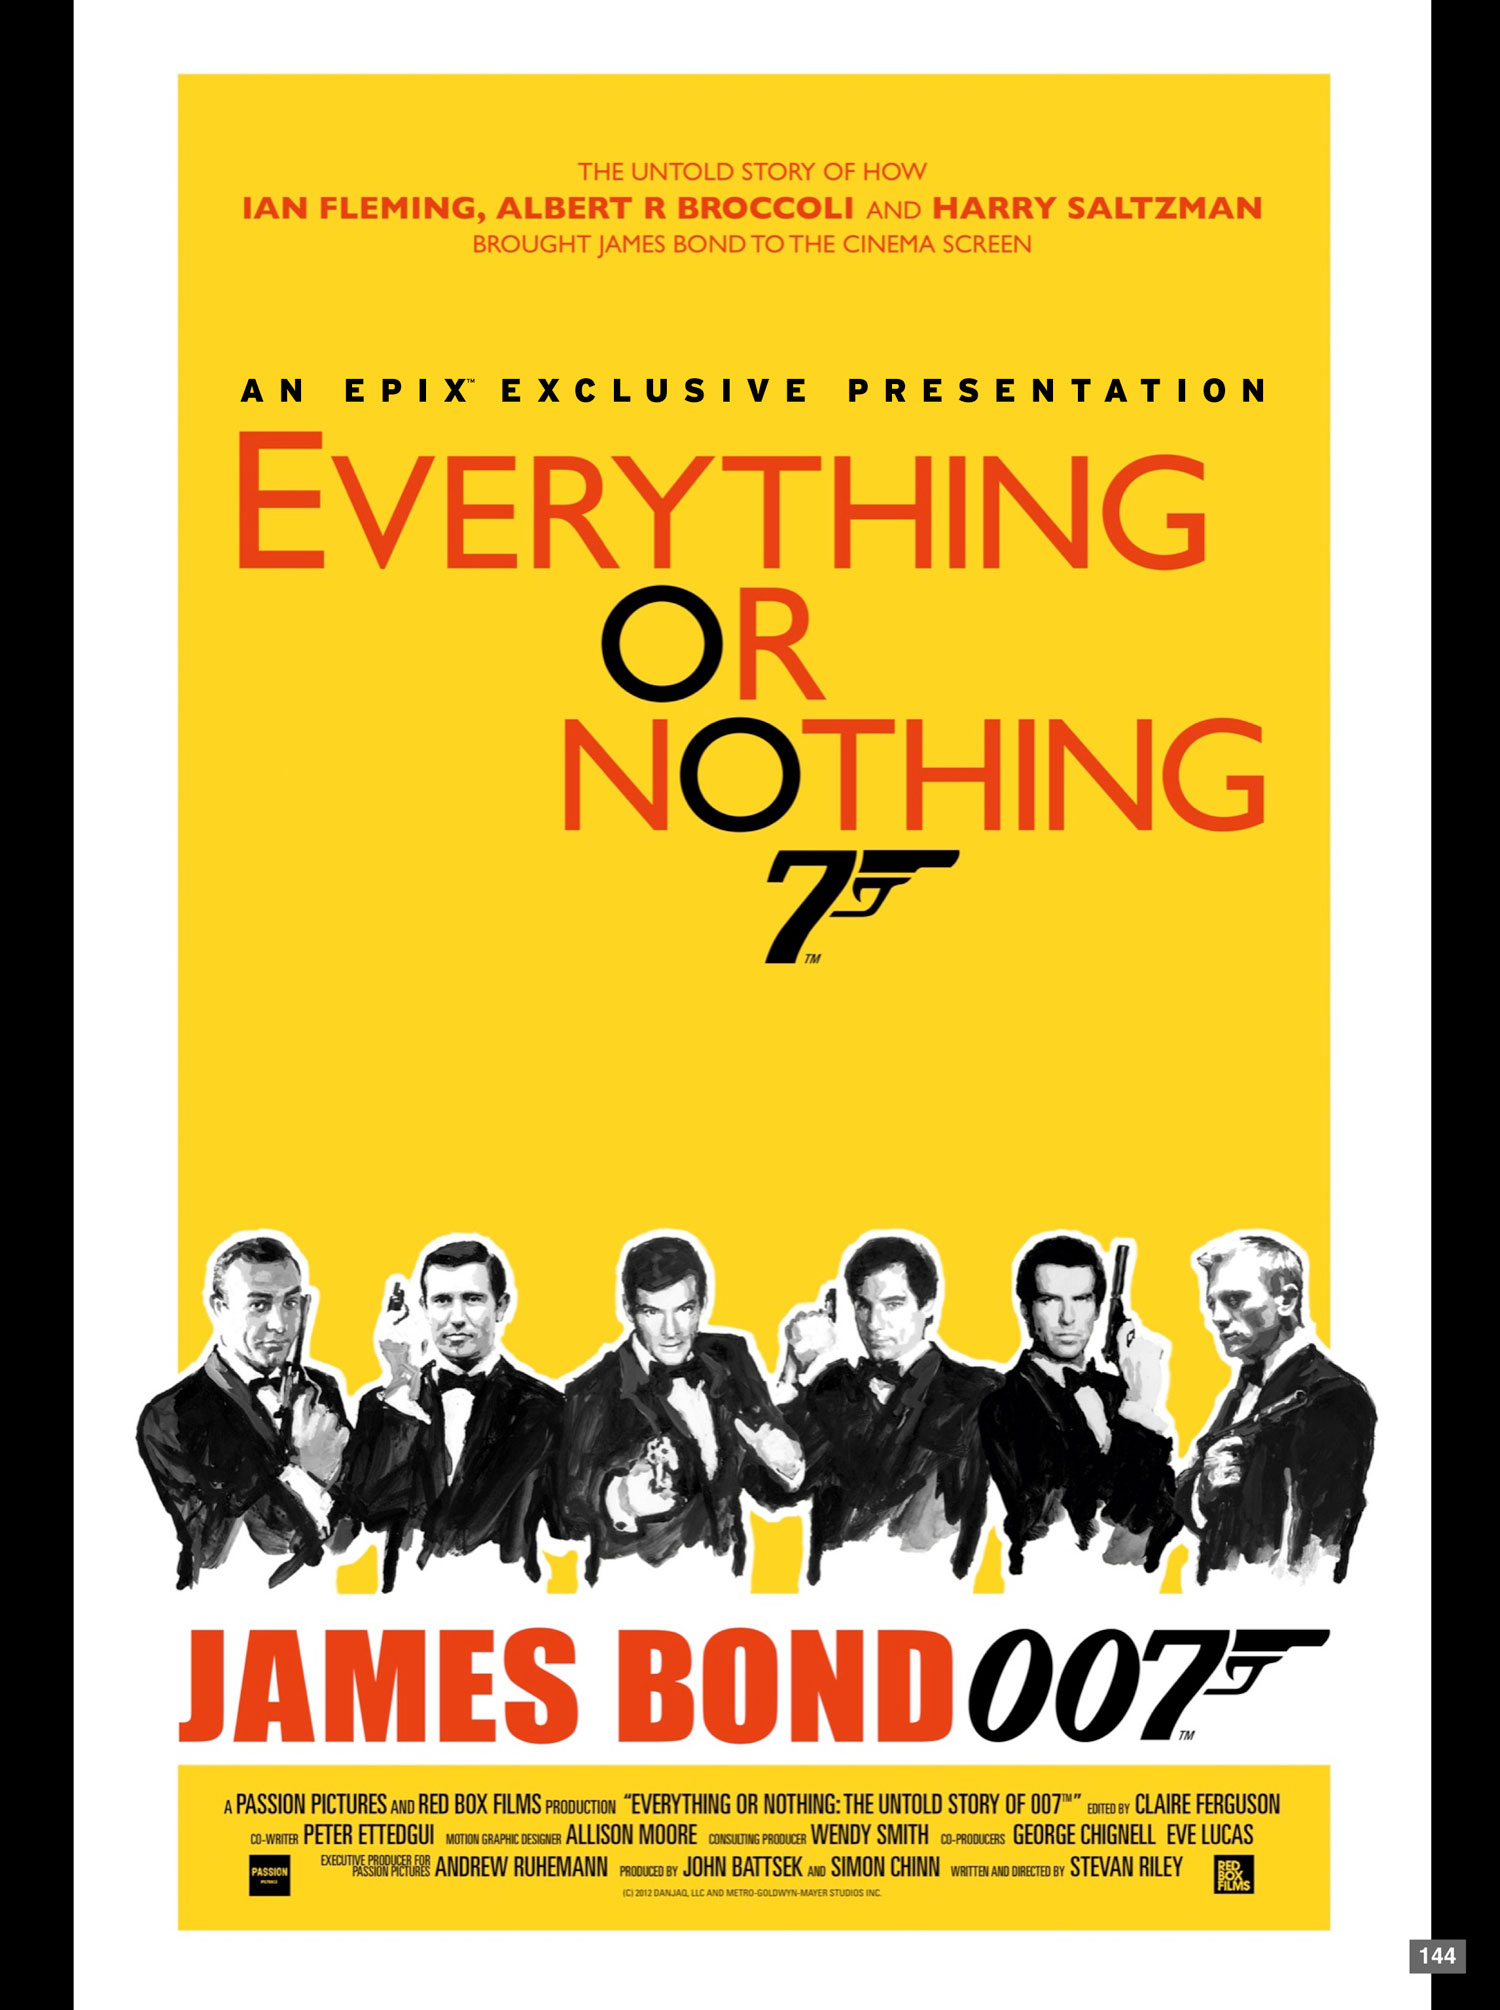 It's hard to imagine a world without the James Bond films, which have been with us since Dr No hit the big screen in The impact of Dr No on cinema audiences of the time was dramatic. There had never been anything like it before.